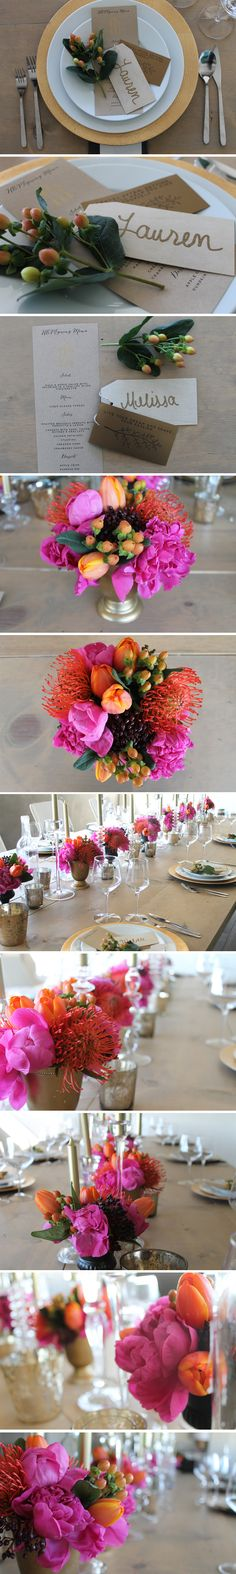 Bright holiday table. Peonies, tulips, coffee beans and pin cushions.